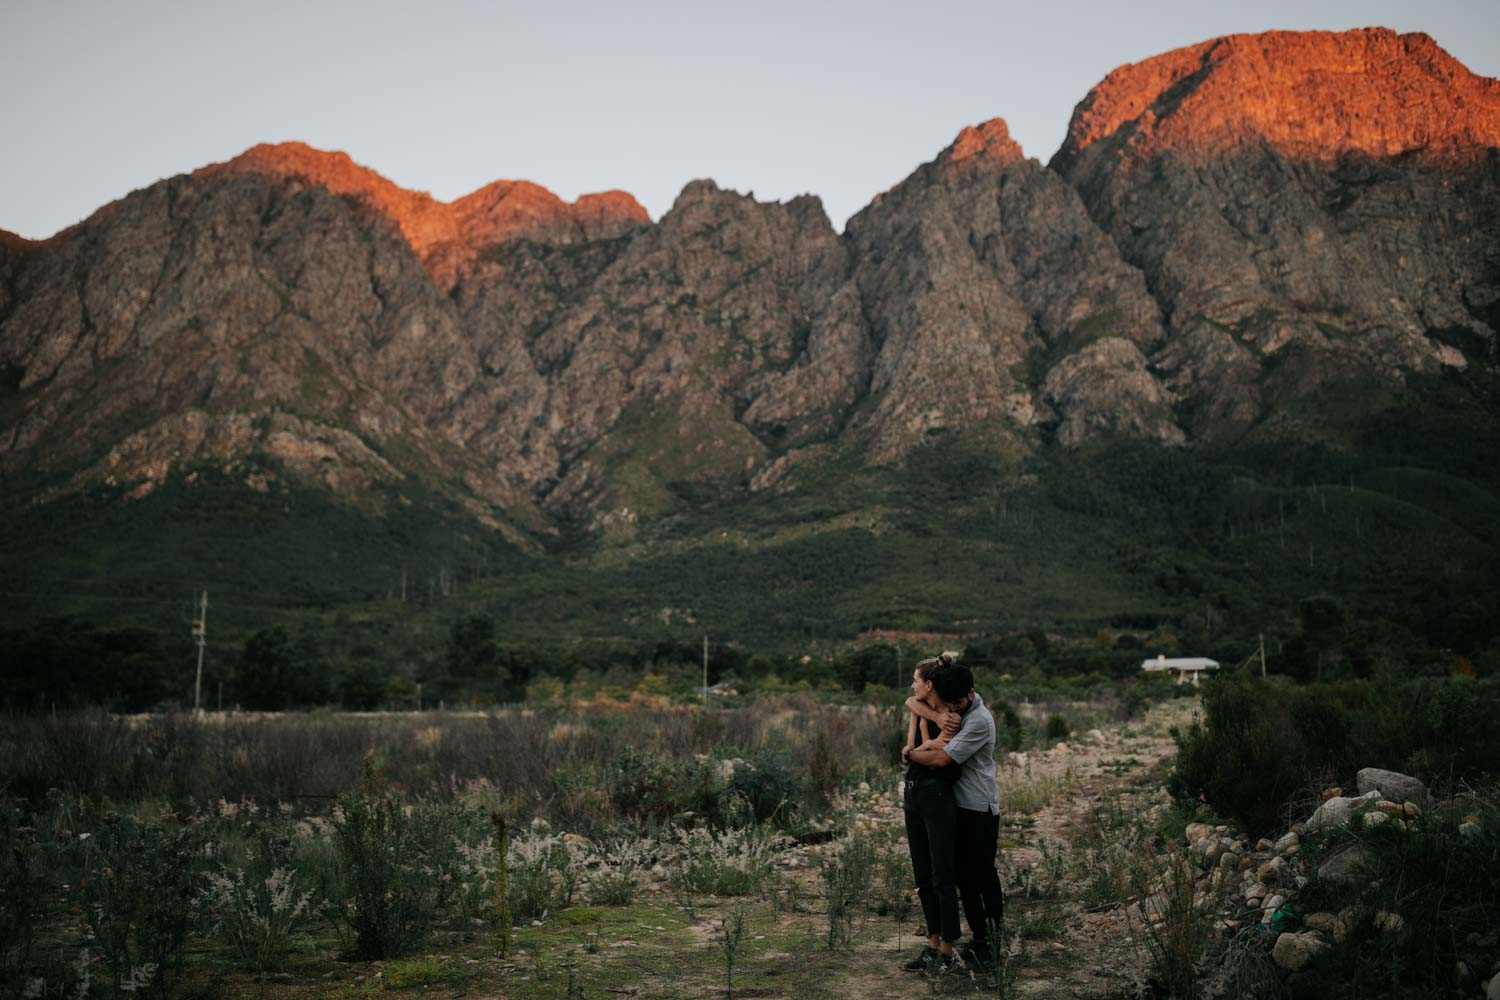 Engagement Photo Shoot in the Franschhoek Mountains close to Cape Town